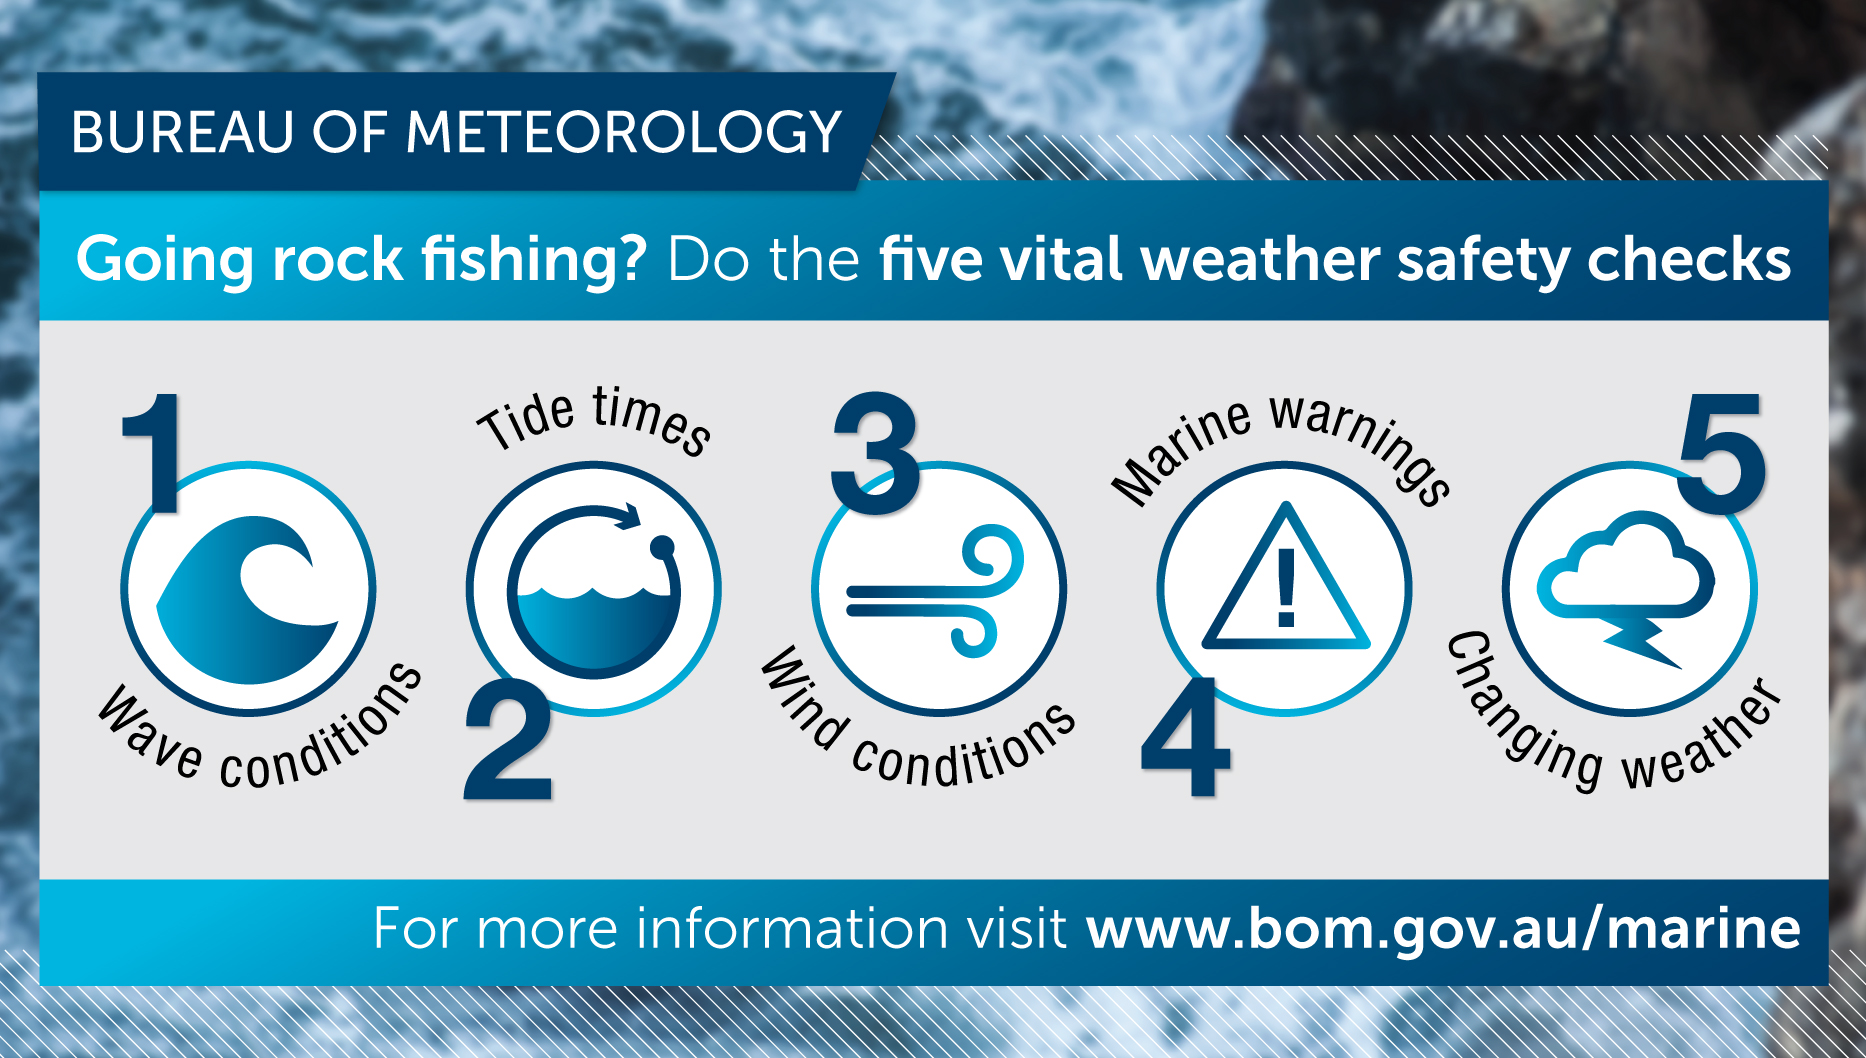 Going rock fishing? Do the five vital weather safety checks. 1. Wave conditions, 2. Tide times, 3. Wind conditions, 4. Marine warnings, 5. Changing weather. For more information visit www.bom.gov.au/marine.